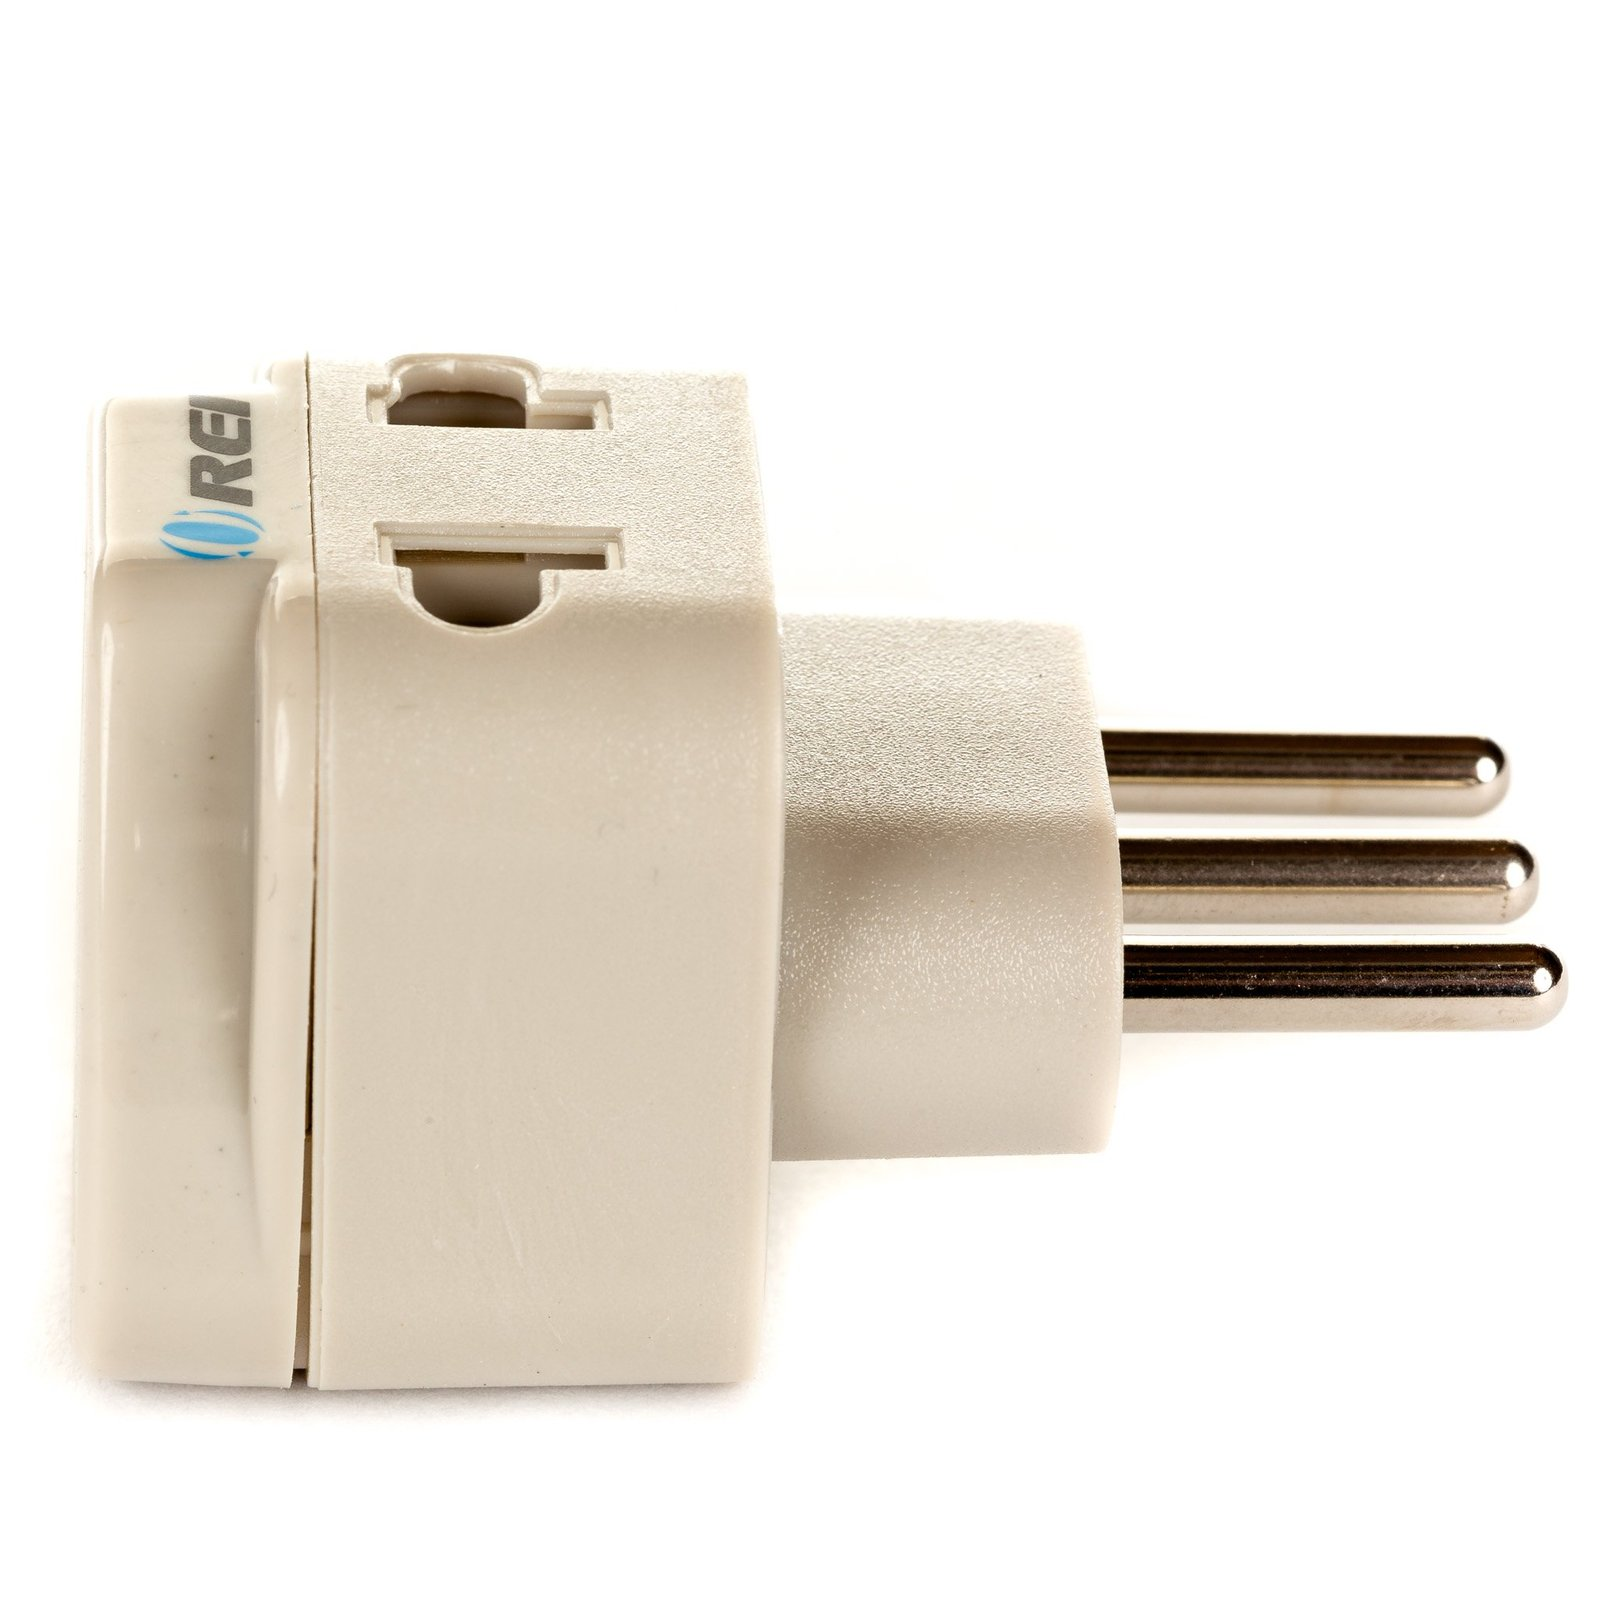 OREI Grounded Universal 2 in 1 Plug Adapter Type L for Italy, Uruguay & more ... image 4